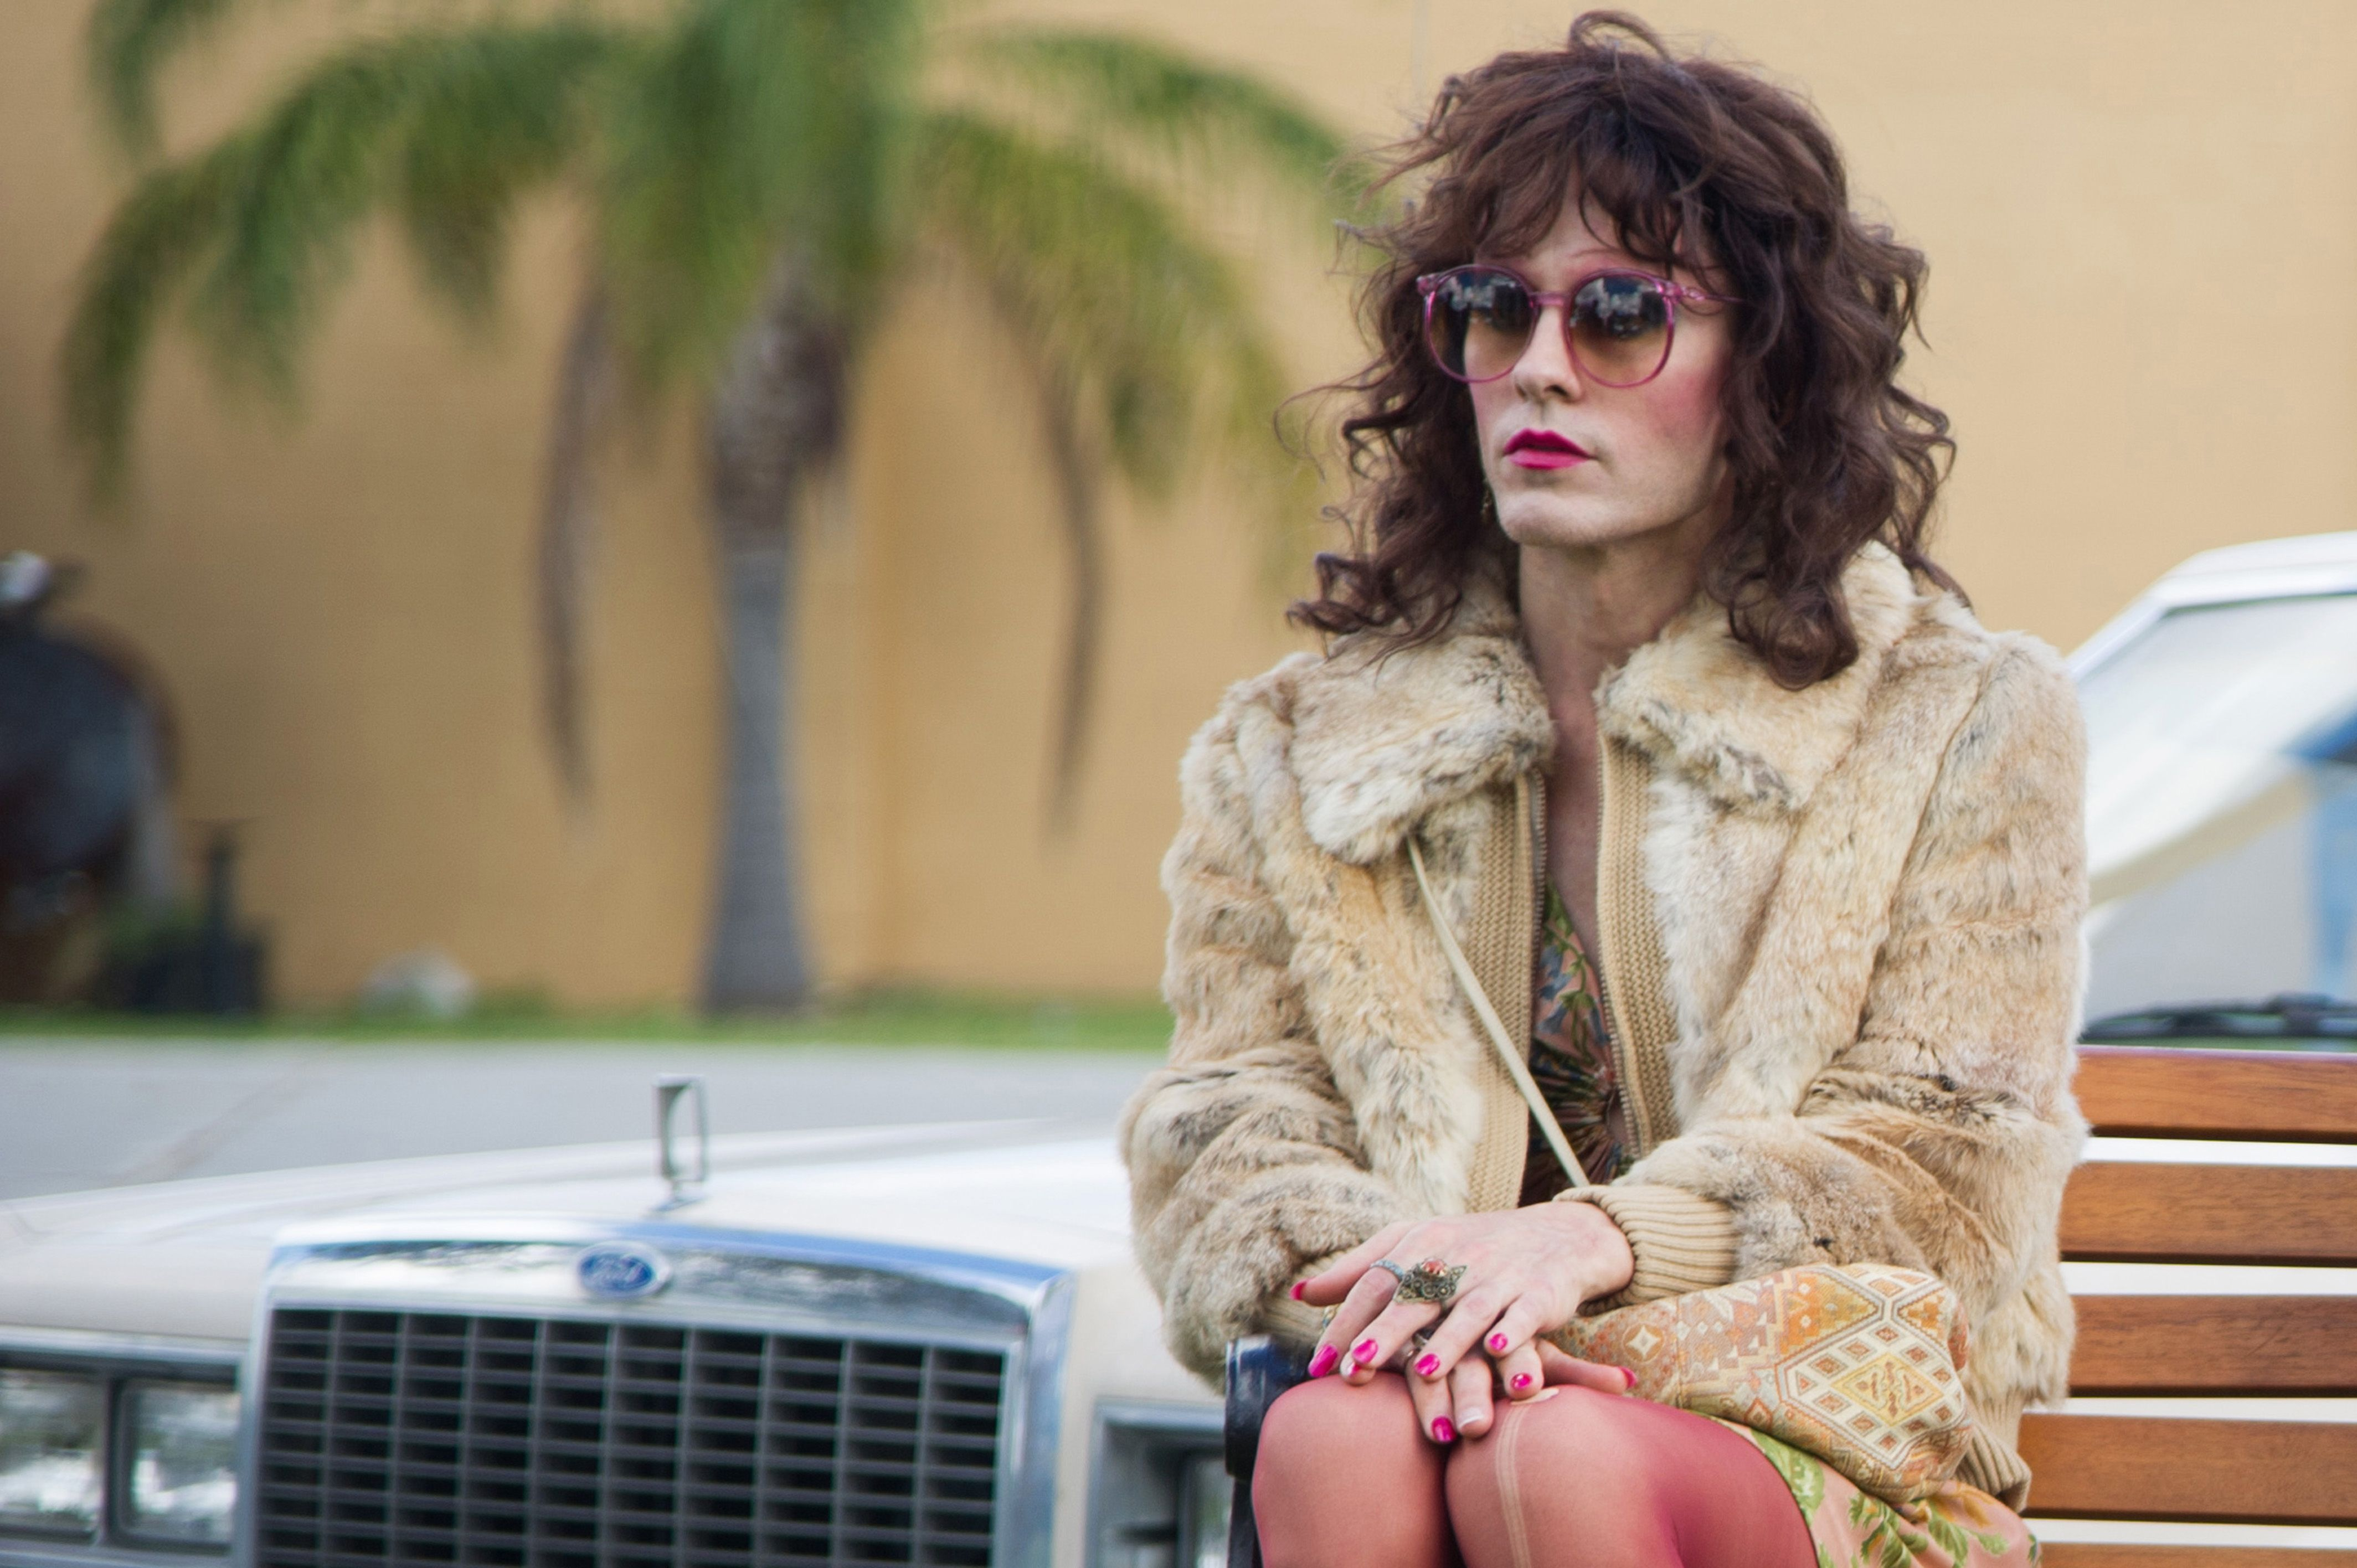 DALLAS BUYERS CLUB Clips, Poster, and Images. DALLAS BUYERS CLUB.